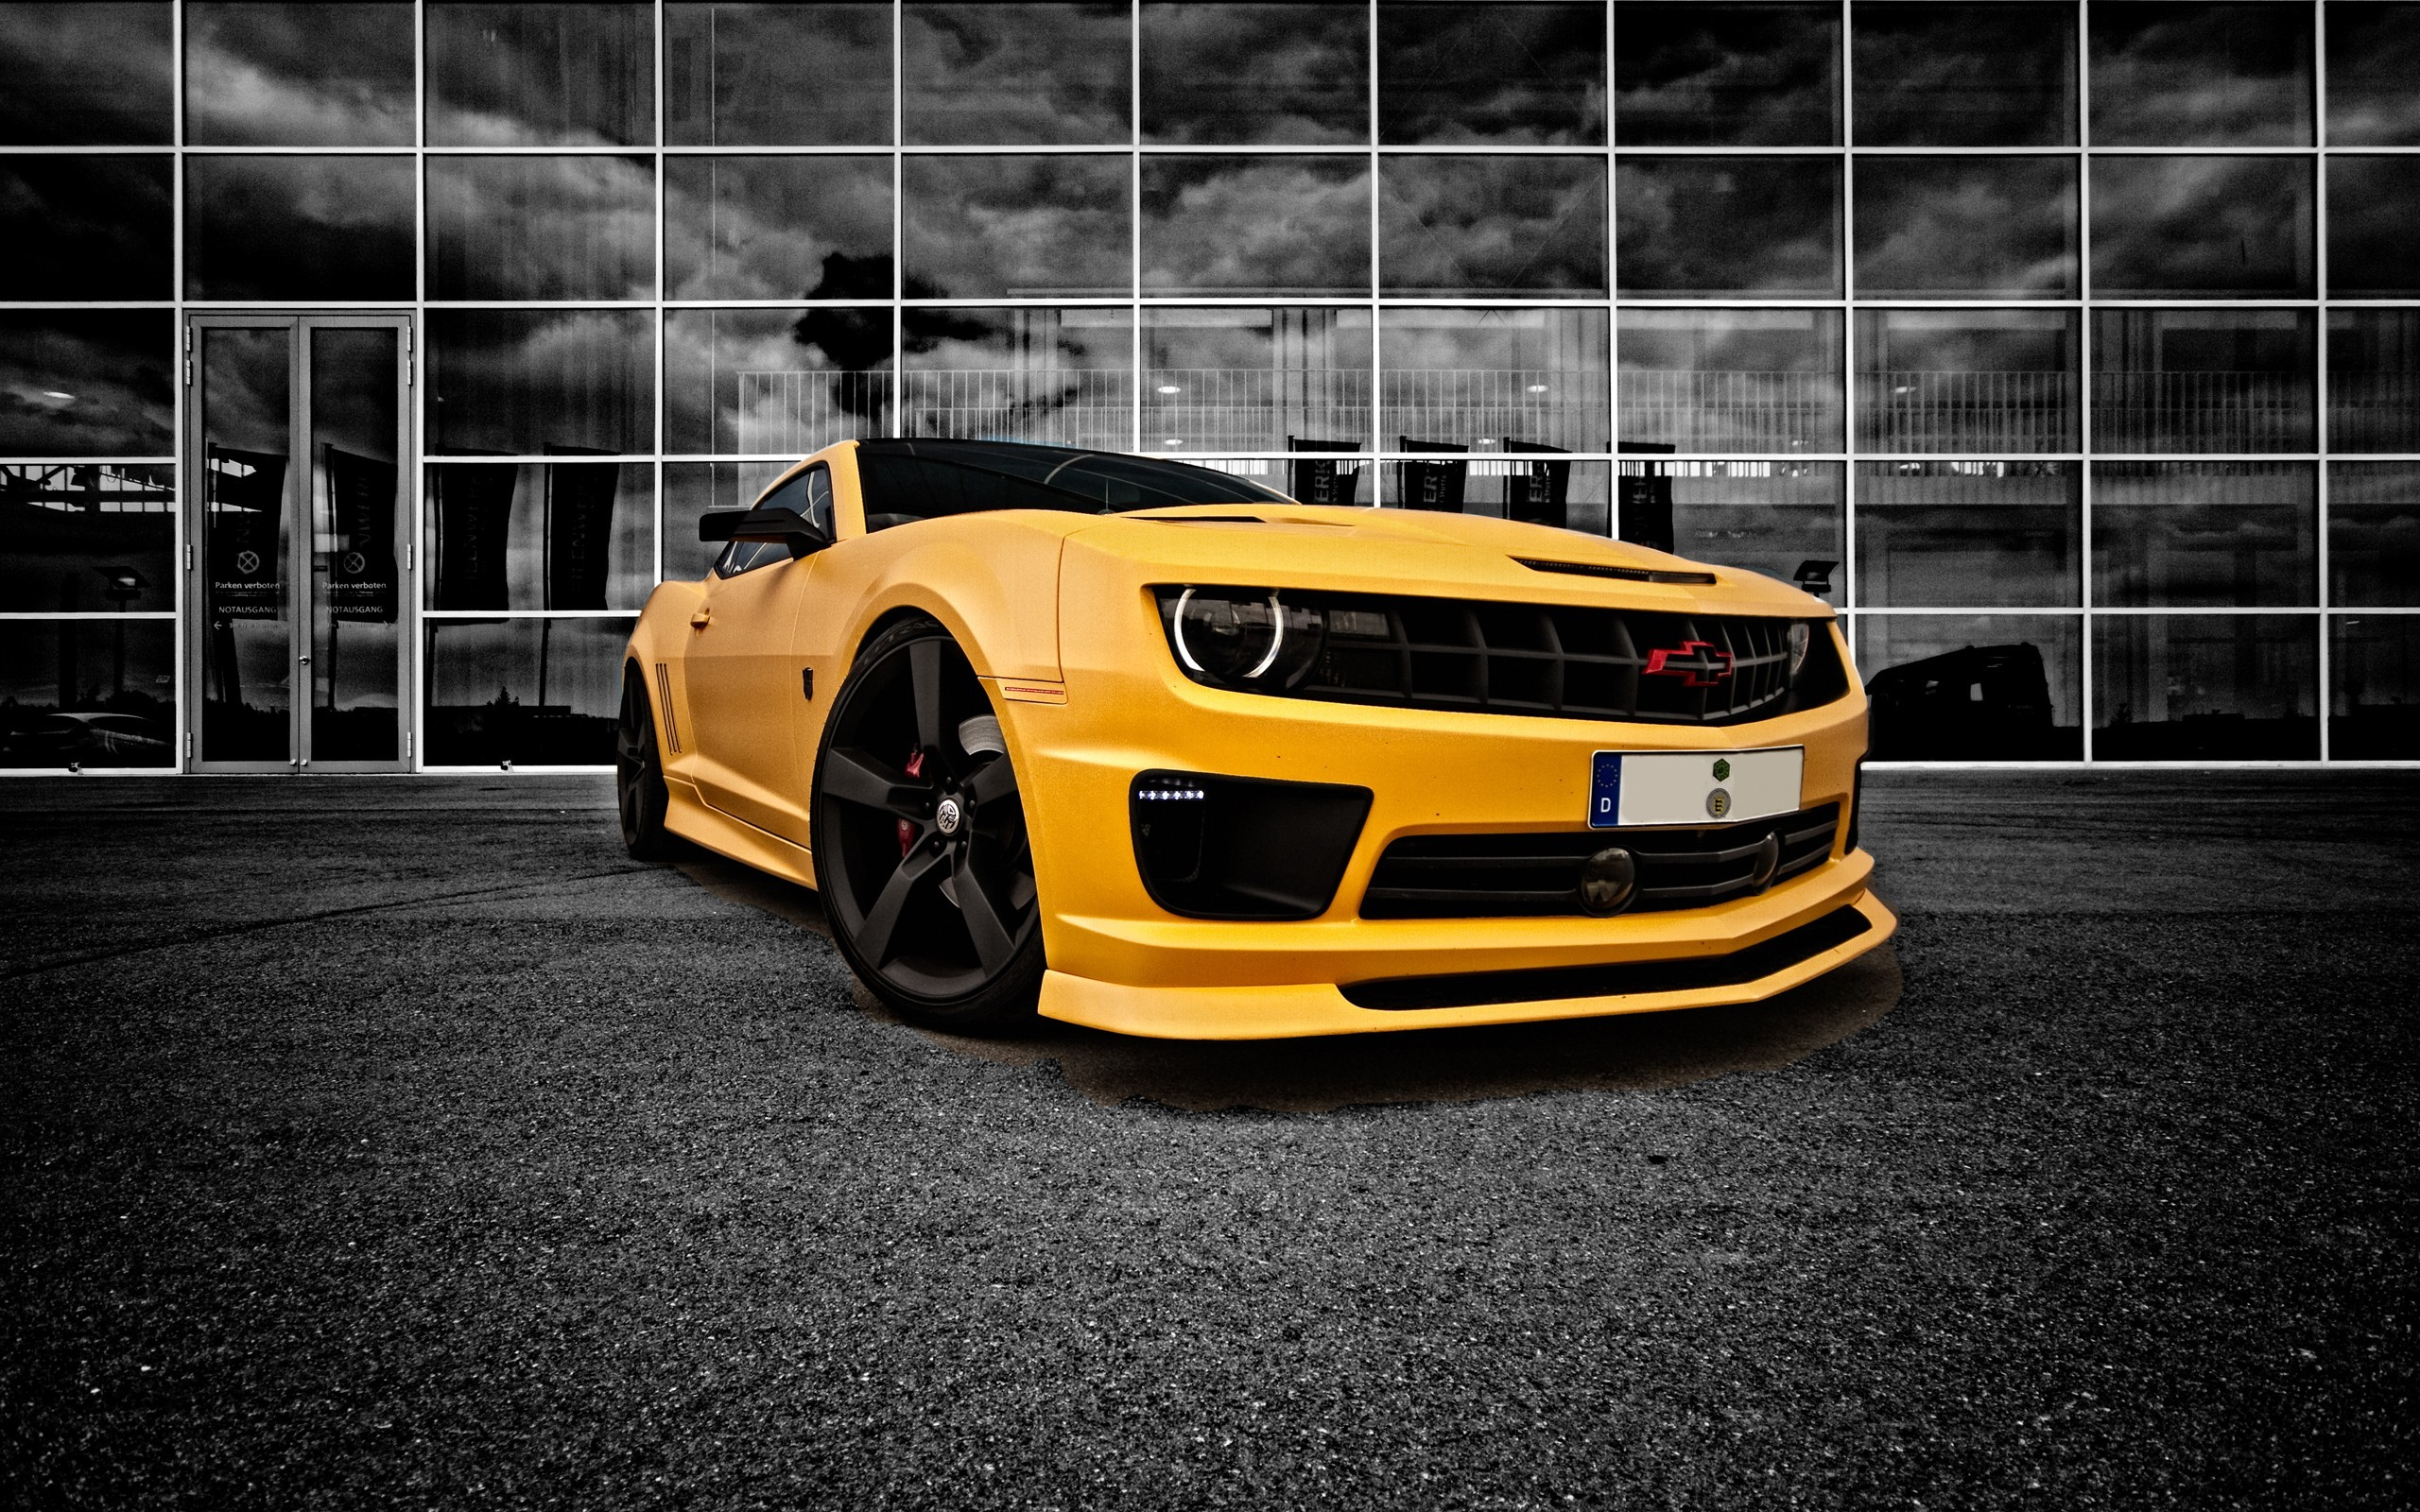 cars Chevrolet vehicles selective coloring HD Wallpaper